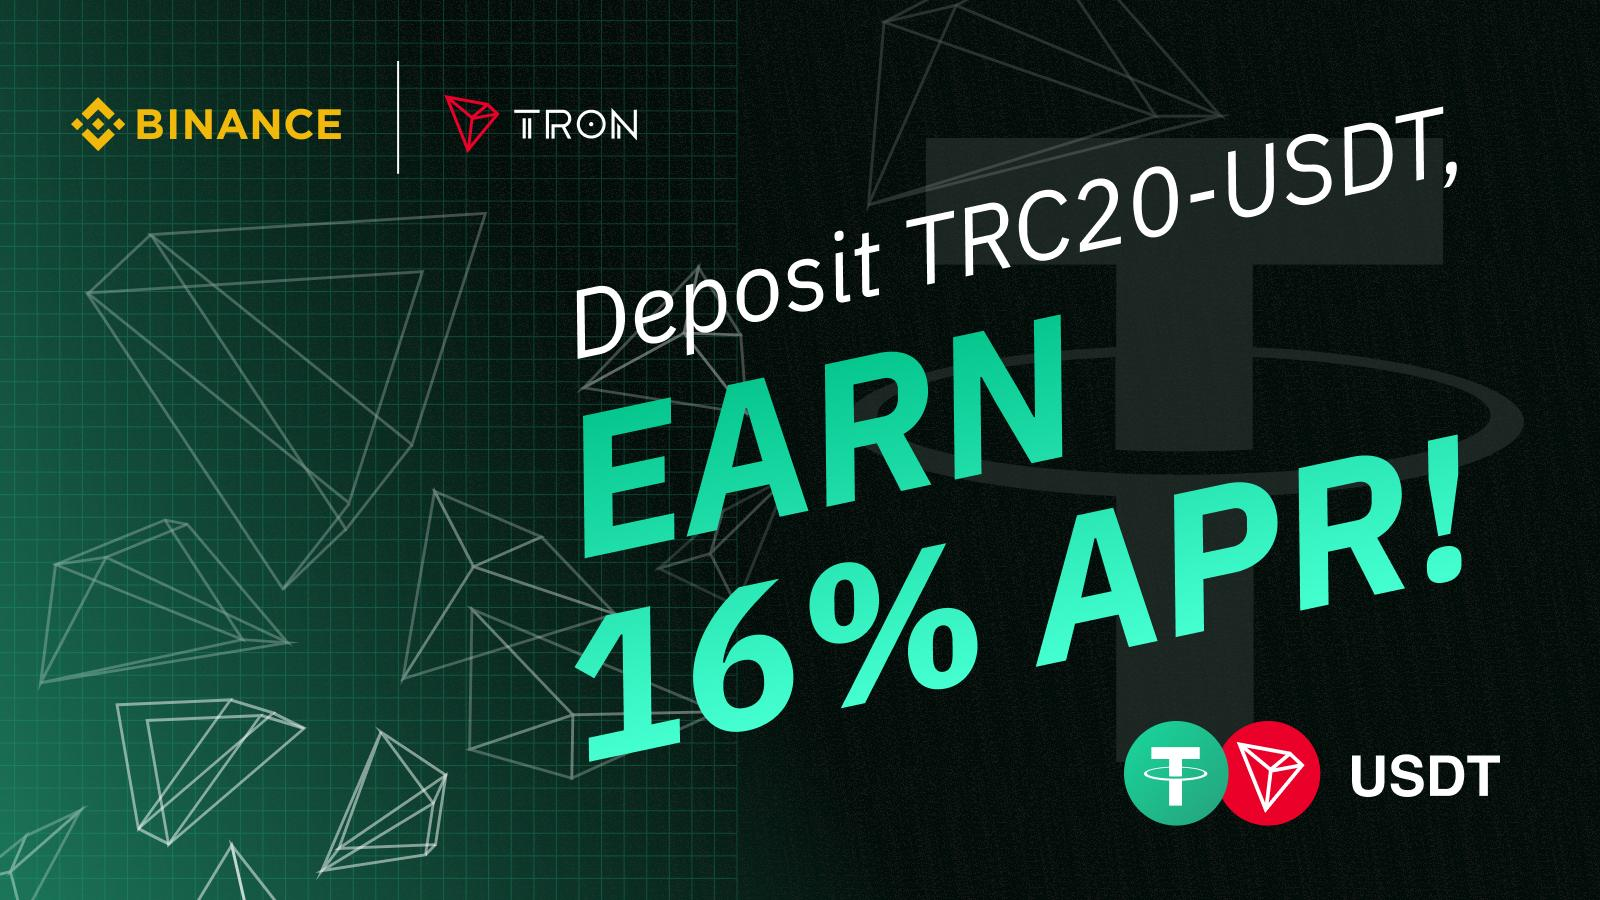 tron usdt binance